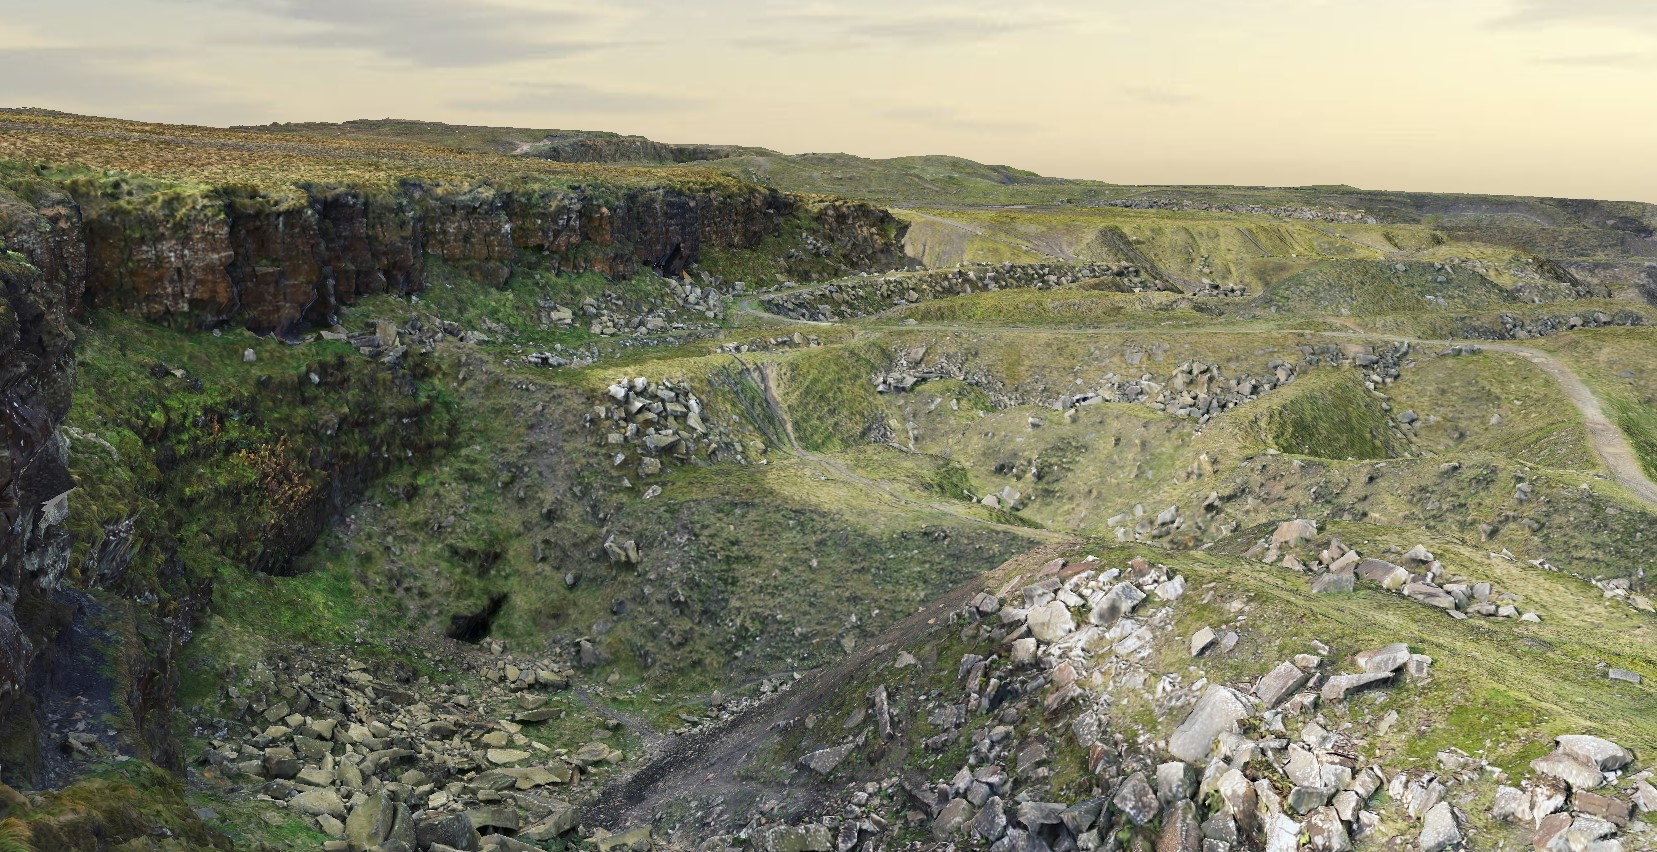 lee quarry rossendale quarry workings heritage valley of stone